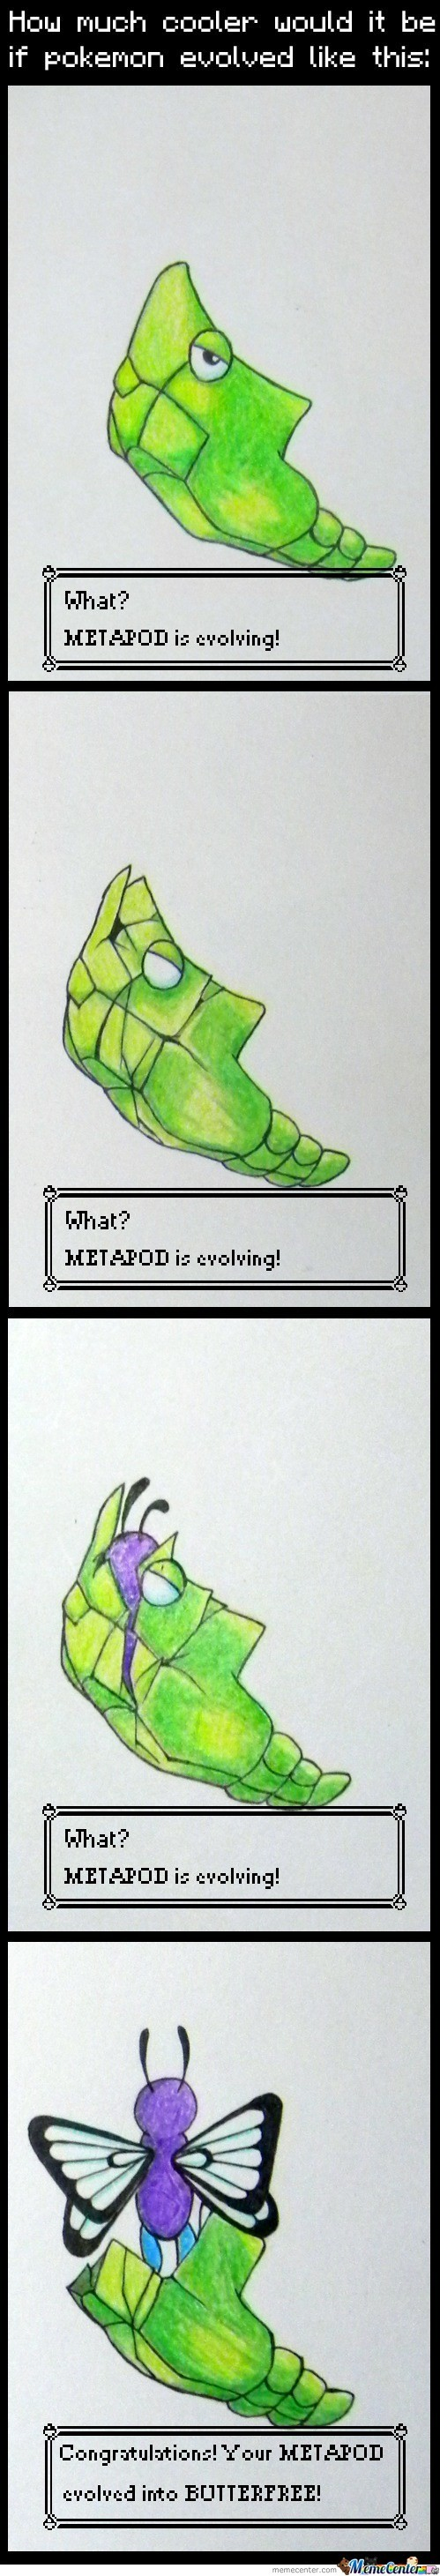 Butterfree Evolution Gone Real